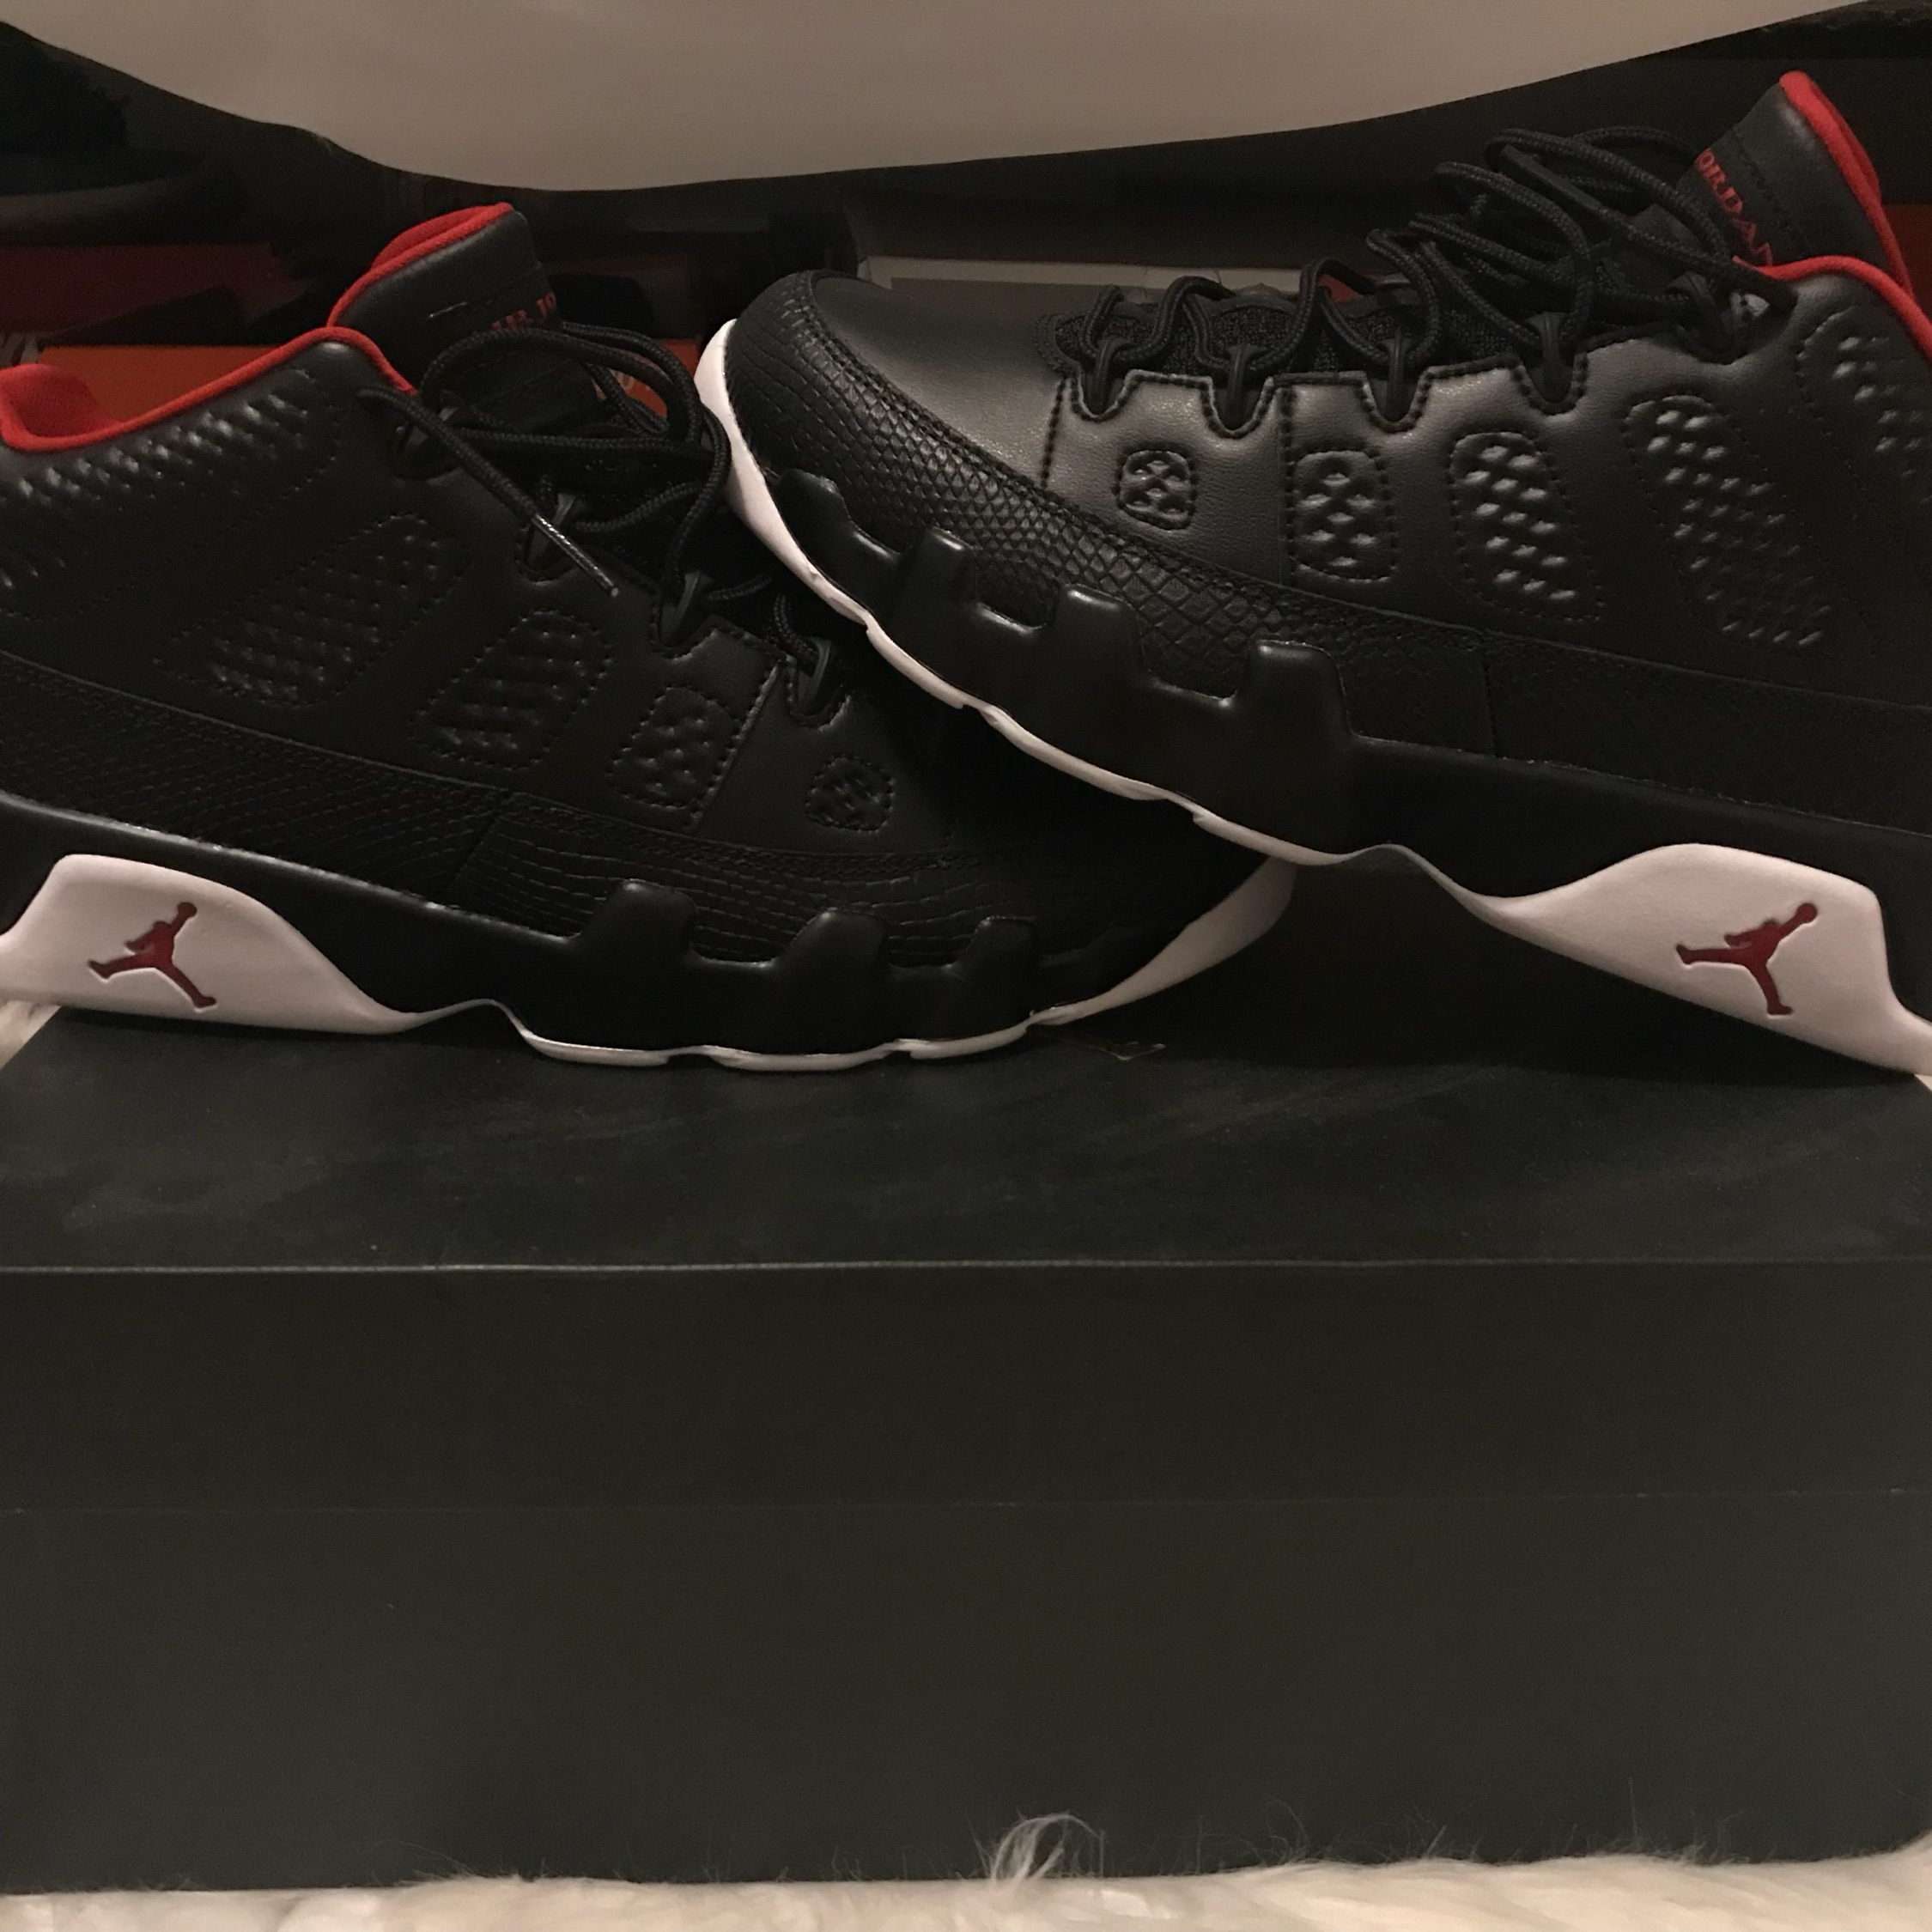 the best attitude d08ba 20c5a Jordan 9 Retro Low Bred Size 10